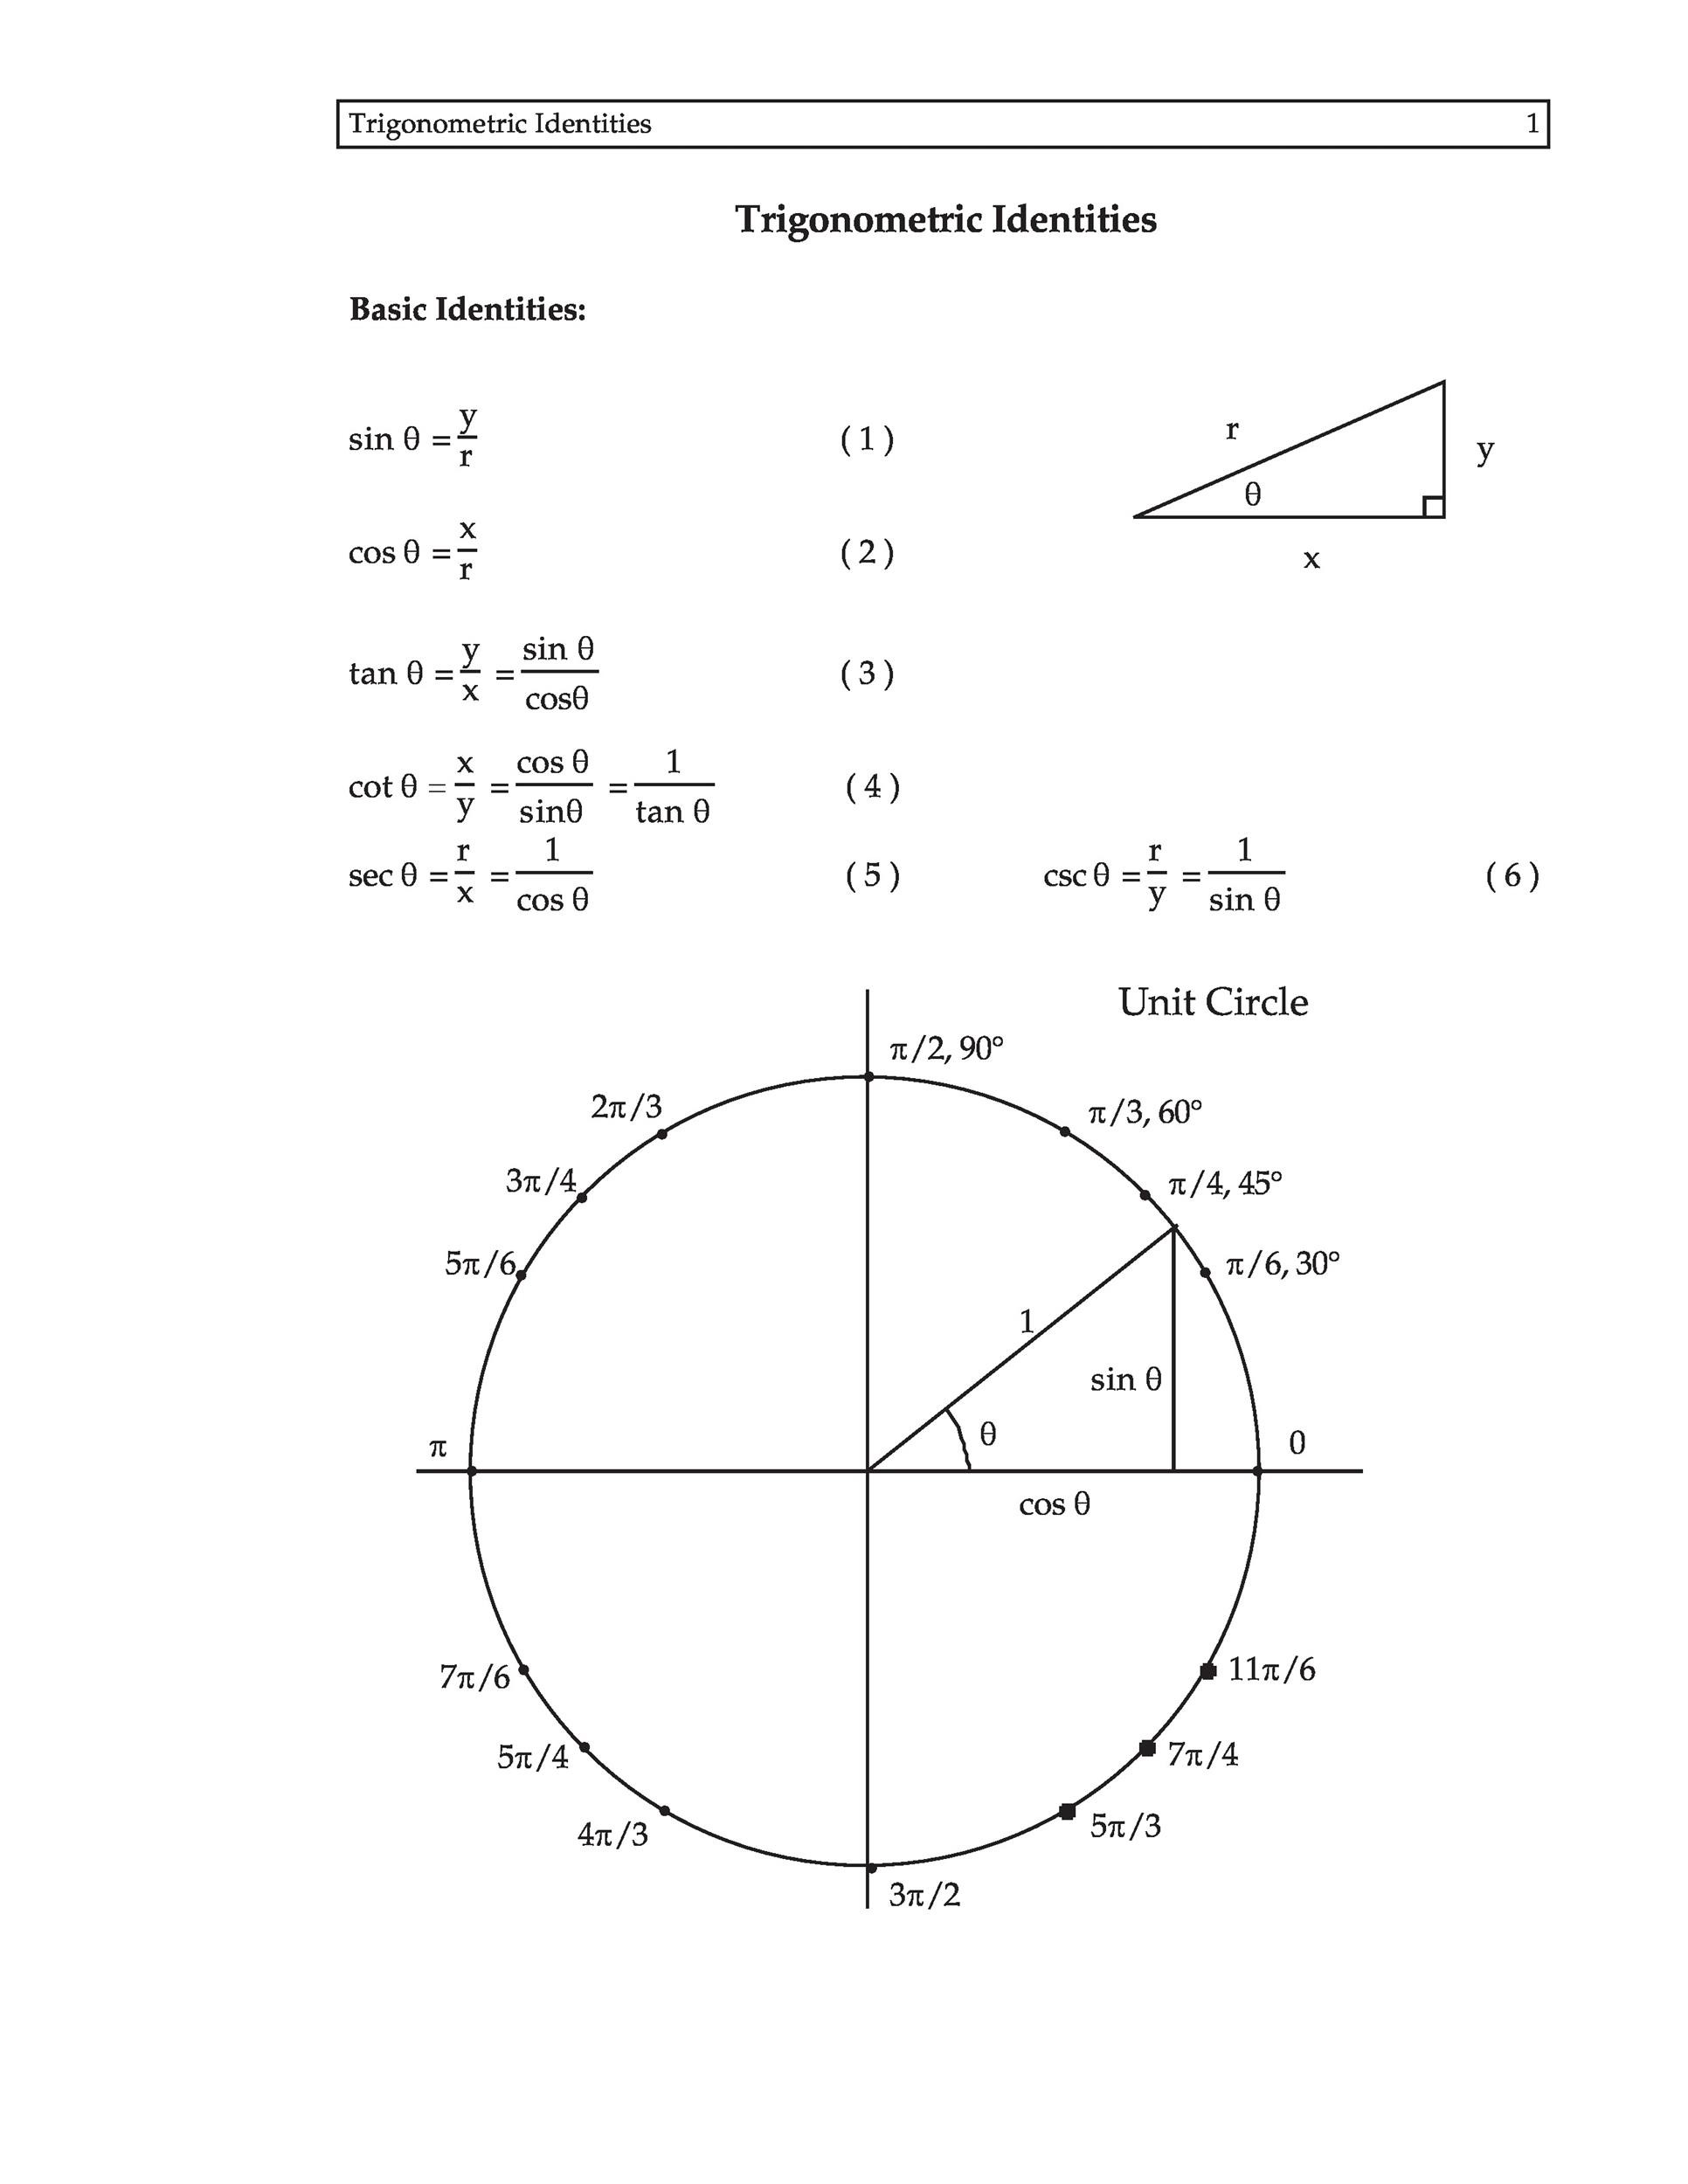 42 printable unit circle charts diagrams sin cos tan cot etc